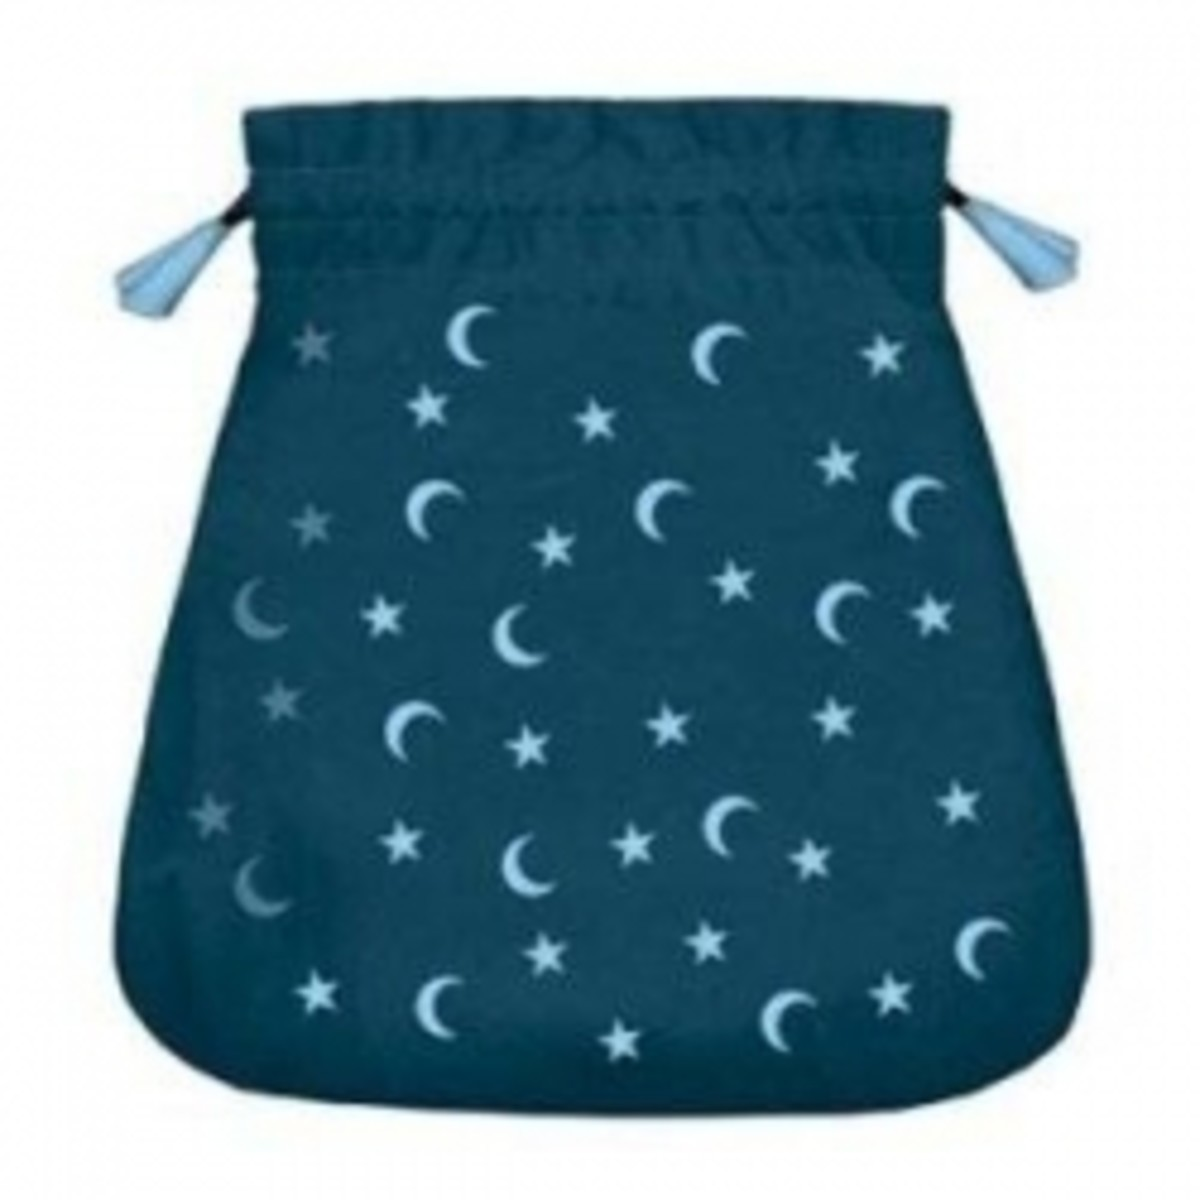 moon and stars velvet tarot bag